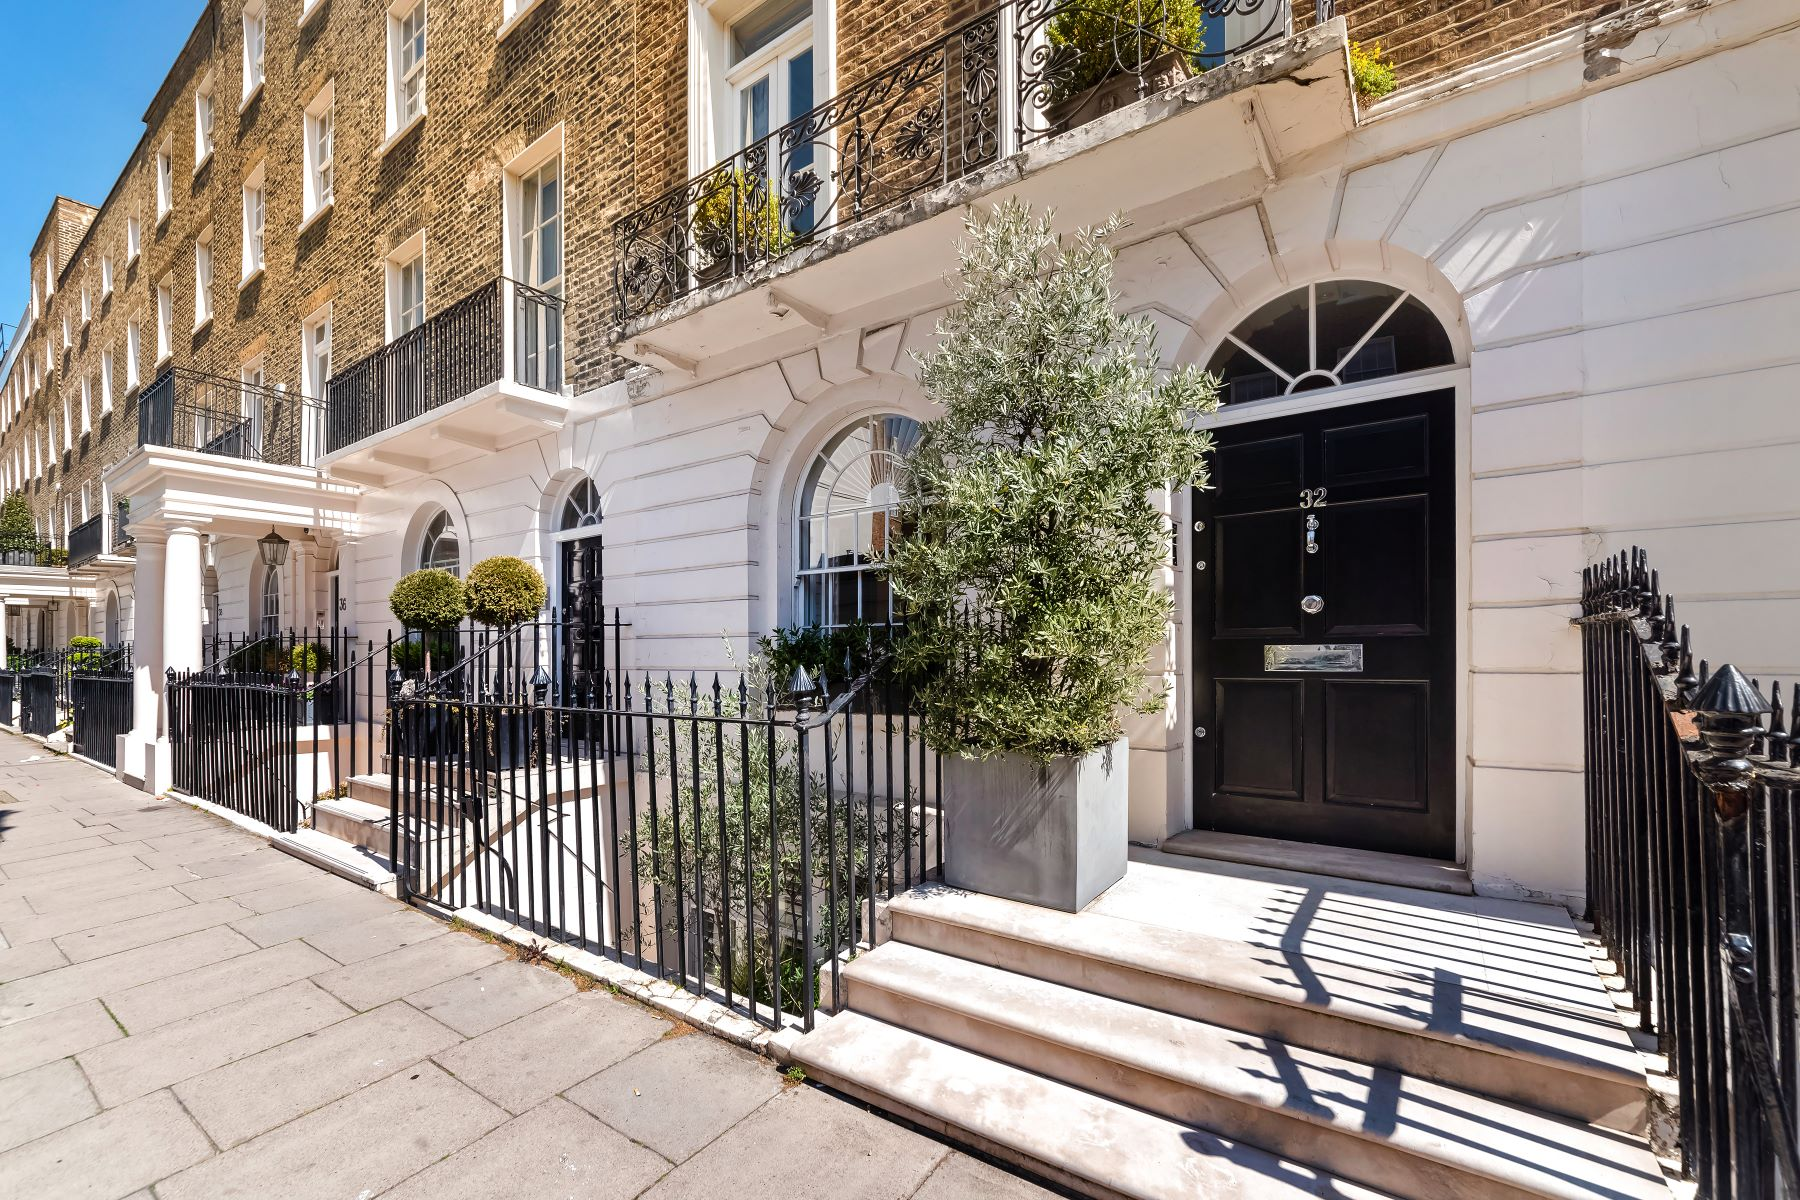 townhouses for Sale at 32 Lower Belgrave Street London, England SW1W 0LN United Kingdom